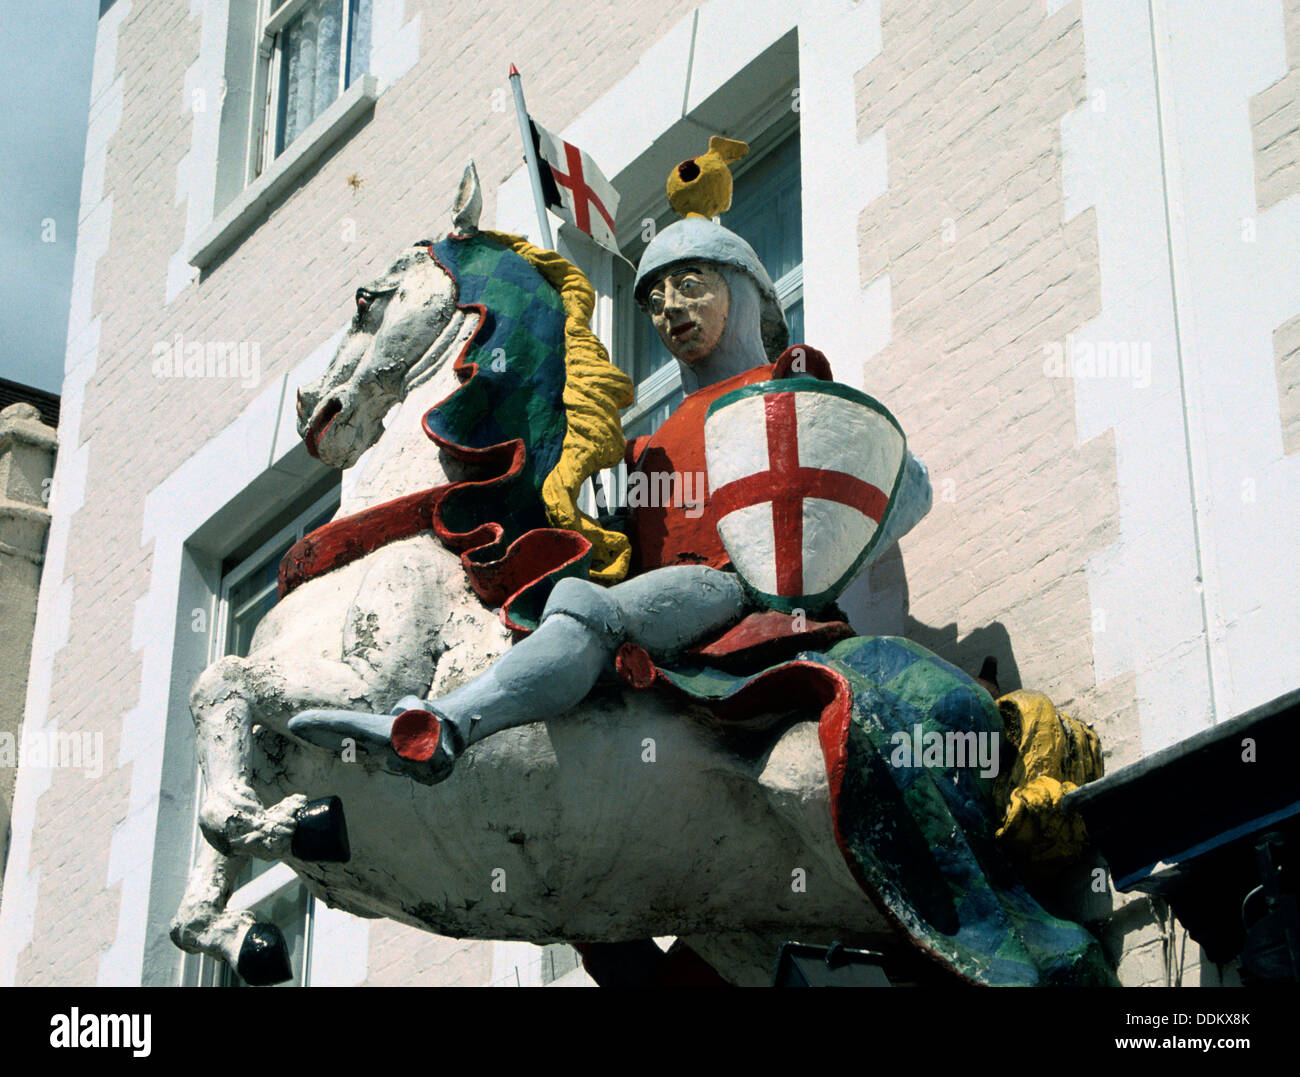 Figure outside a public house depicting St George on a horse. Artist: S Nott - Stock Image